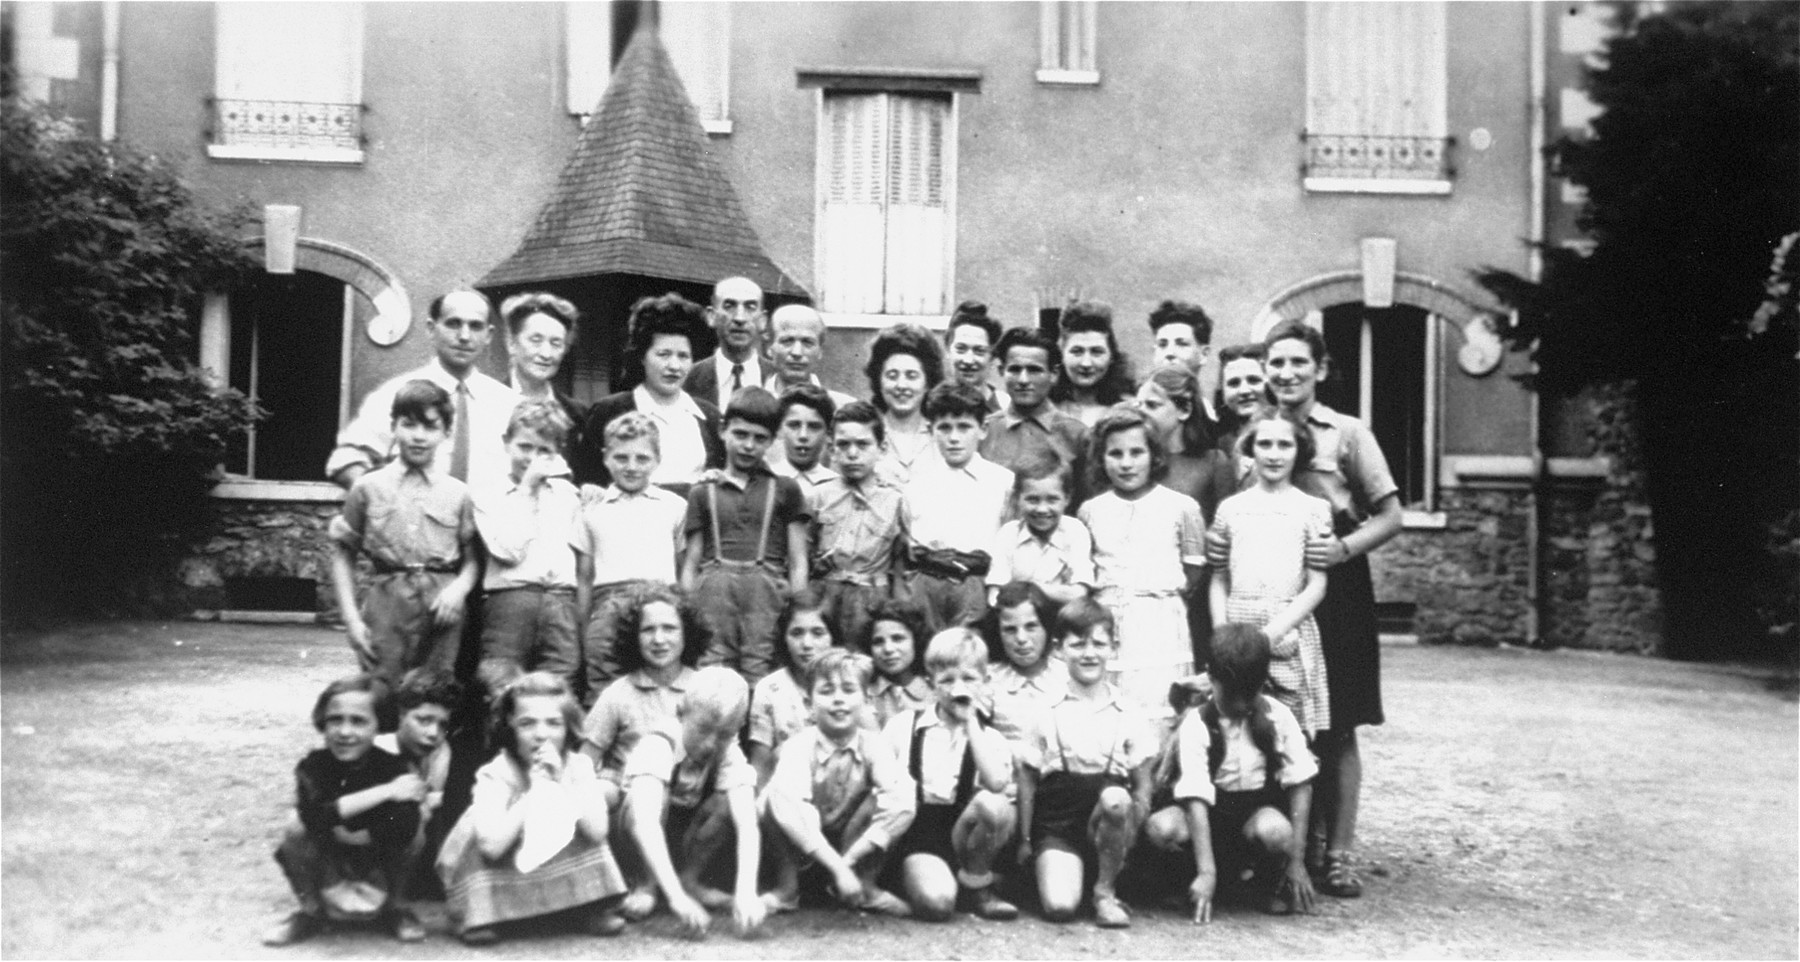 Group portrait of Jewish children in an OSE (Oeuvre de Secours aux Enfants) home in Draveil, France.    Hemine Katz, who helped take care of these children, is pictured in the back row, at the far right.  Felice Zimmern is the third person in the first row, on the left, kneeling and holdng a white handkerchief,.